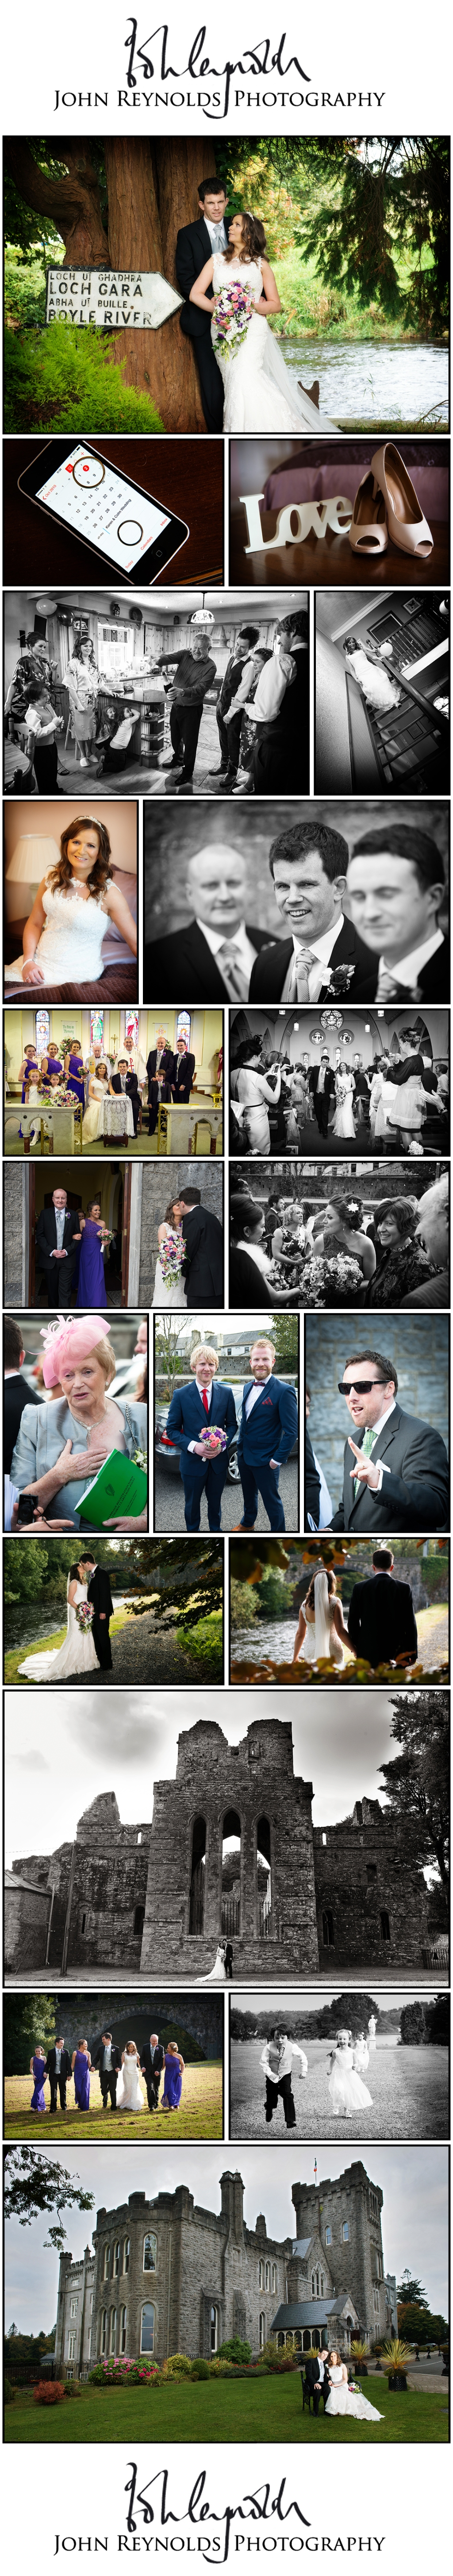 Blog Collage-Karen & Colm